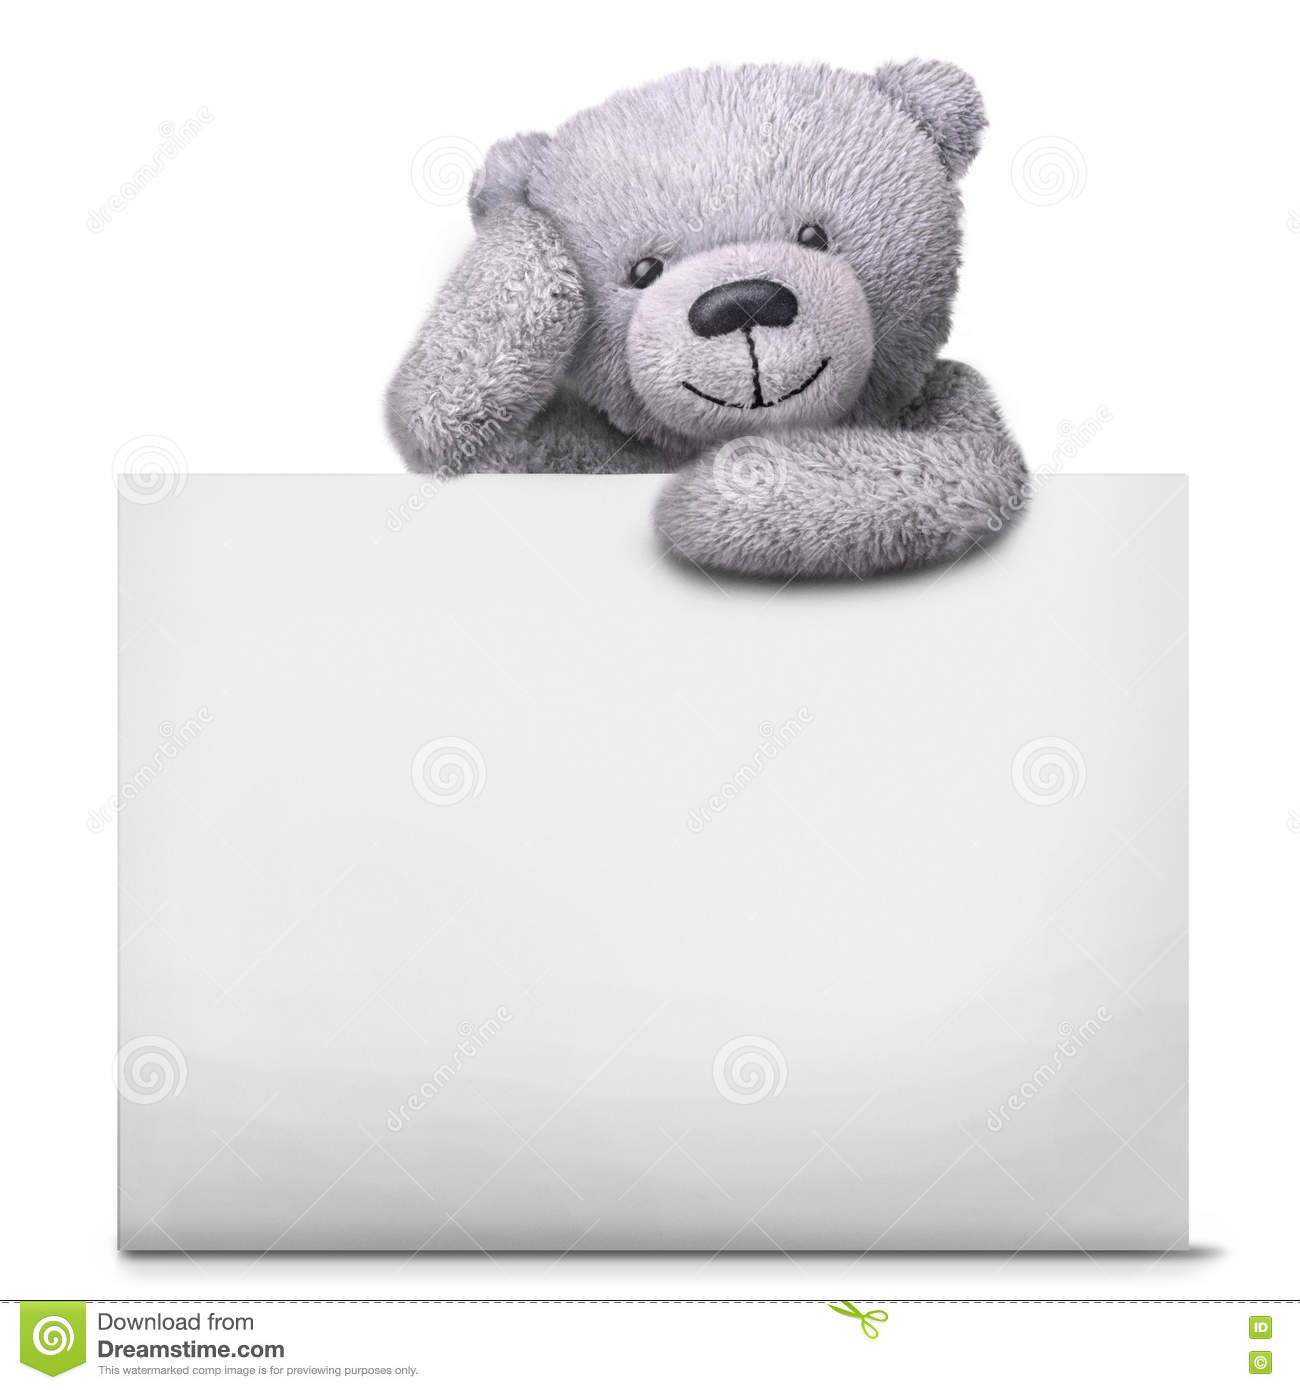 Classic teddy bear toy with paper card template stock photo image download classic teddy bear toy with paper card template stock photo image of background maxwellsz